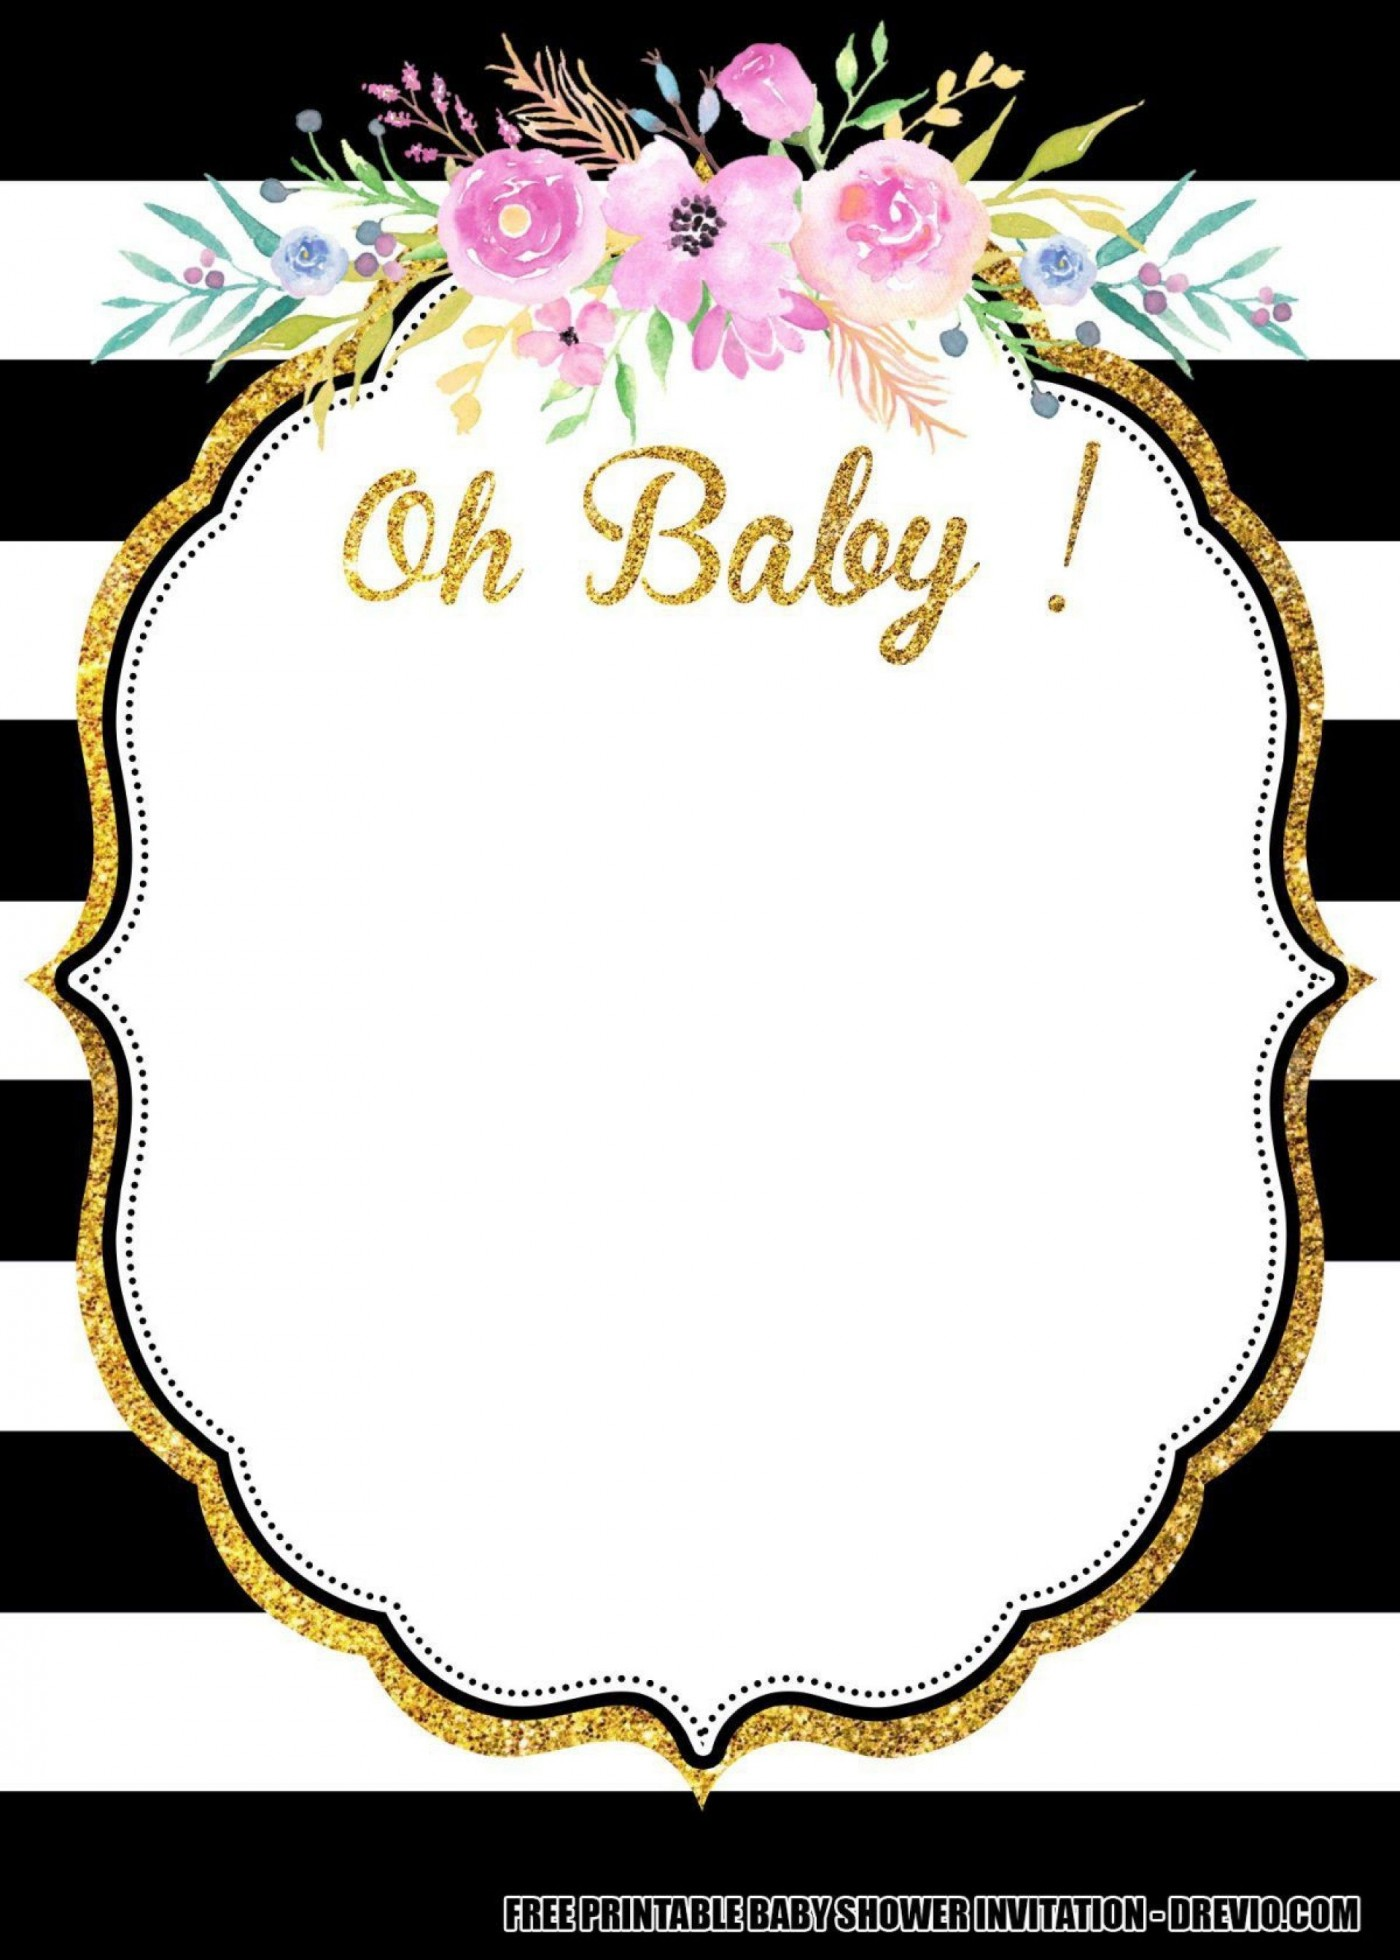 010 Incredible Baby Shower Invitation Card Template Free Download Inspiration  Indian1400